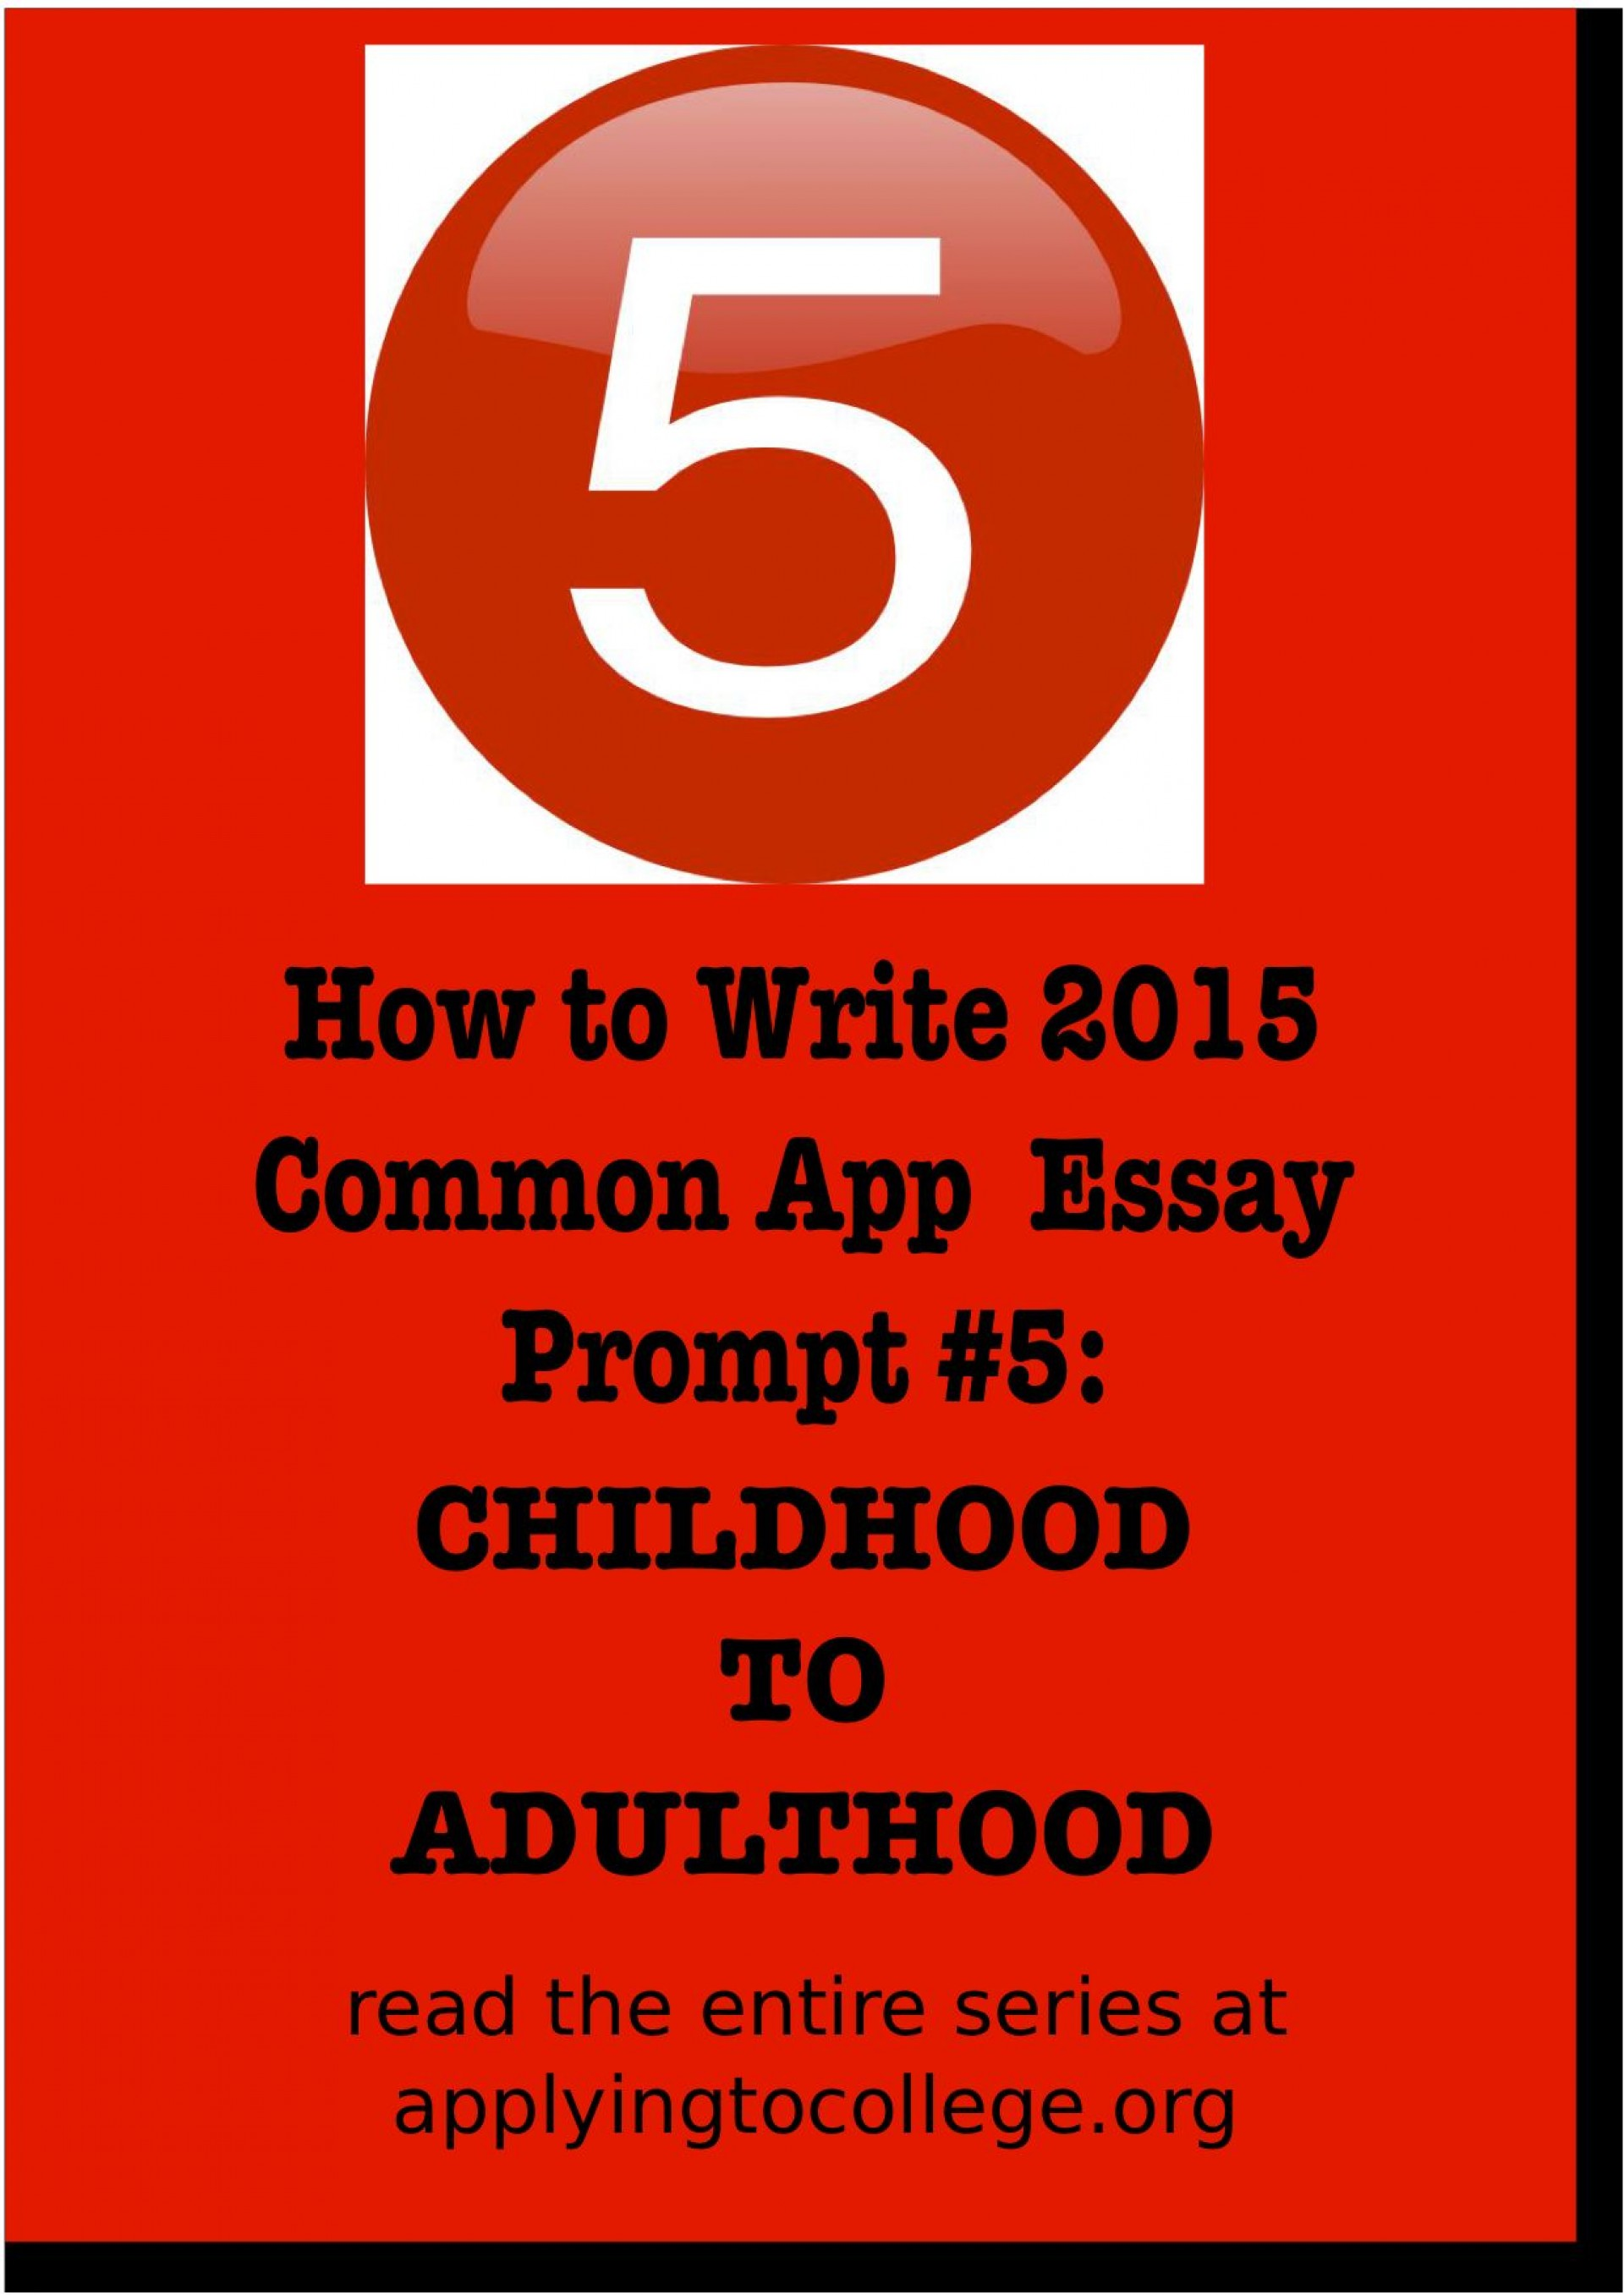 021 Prompts For College Essays Essay Unusual 2015 1920